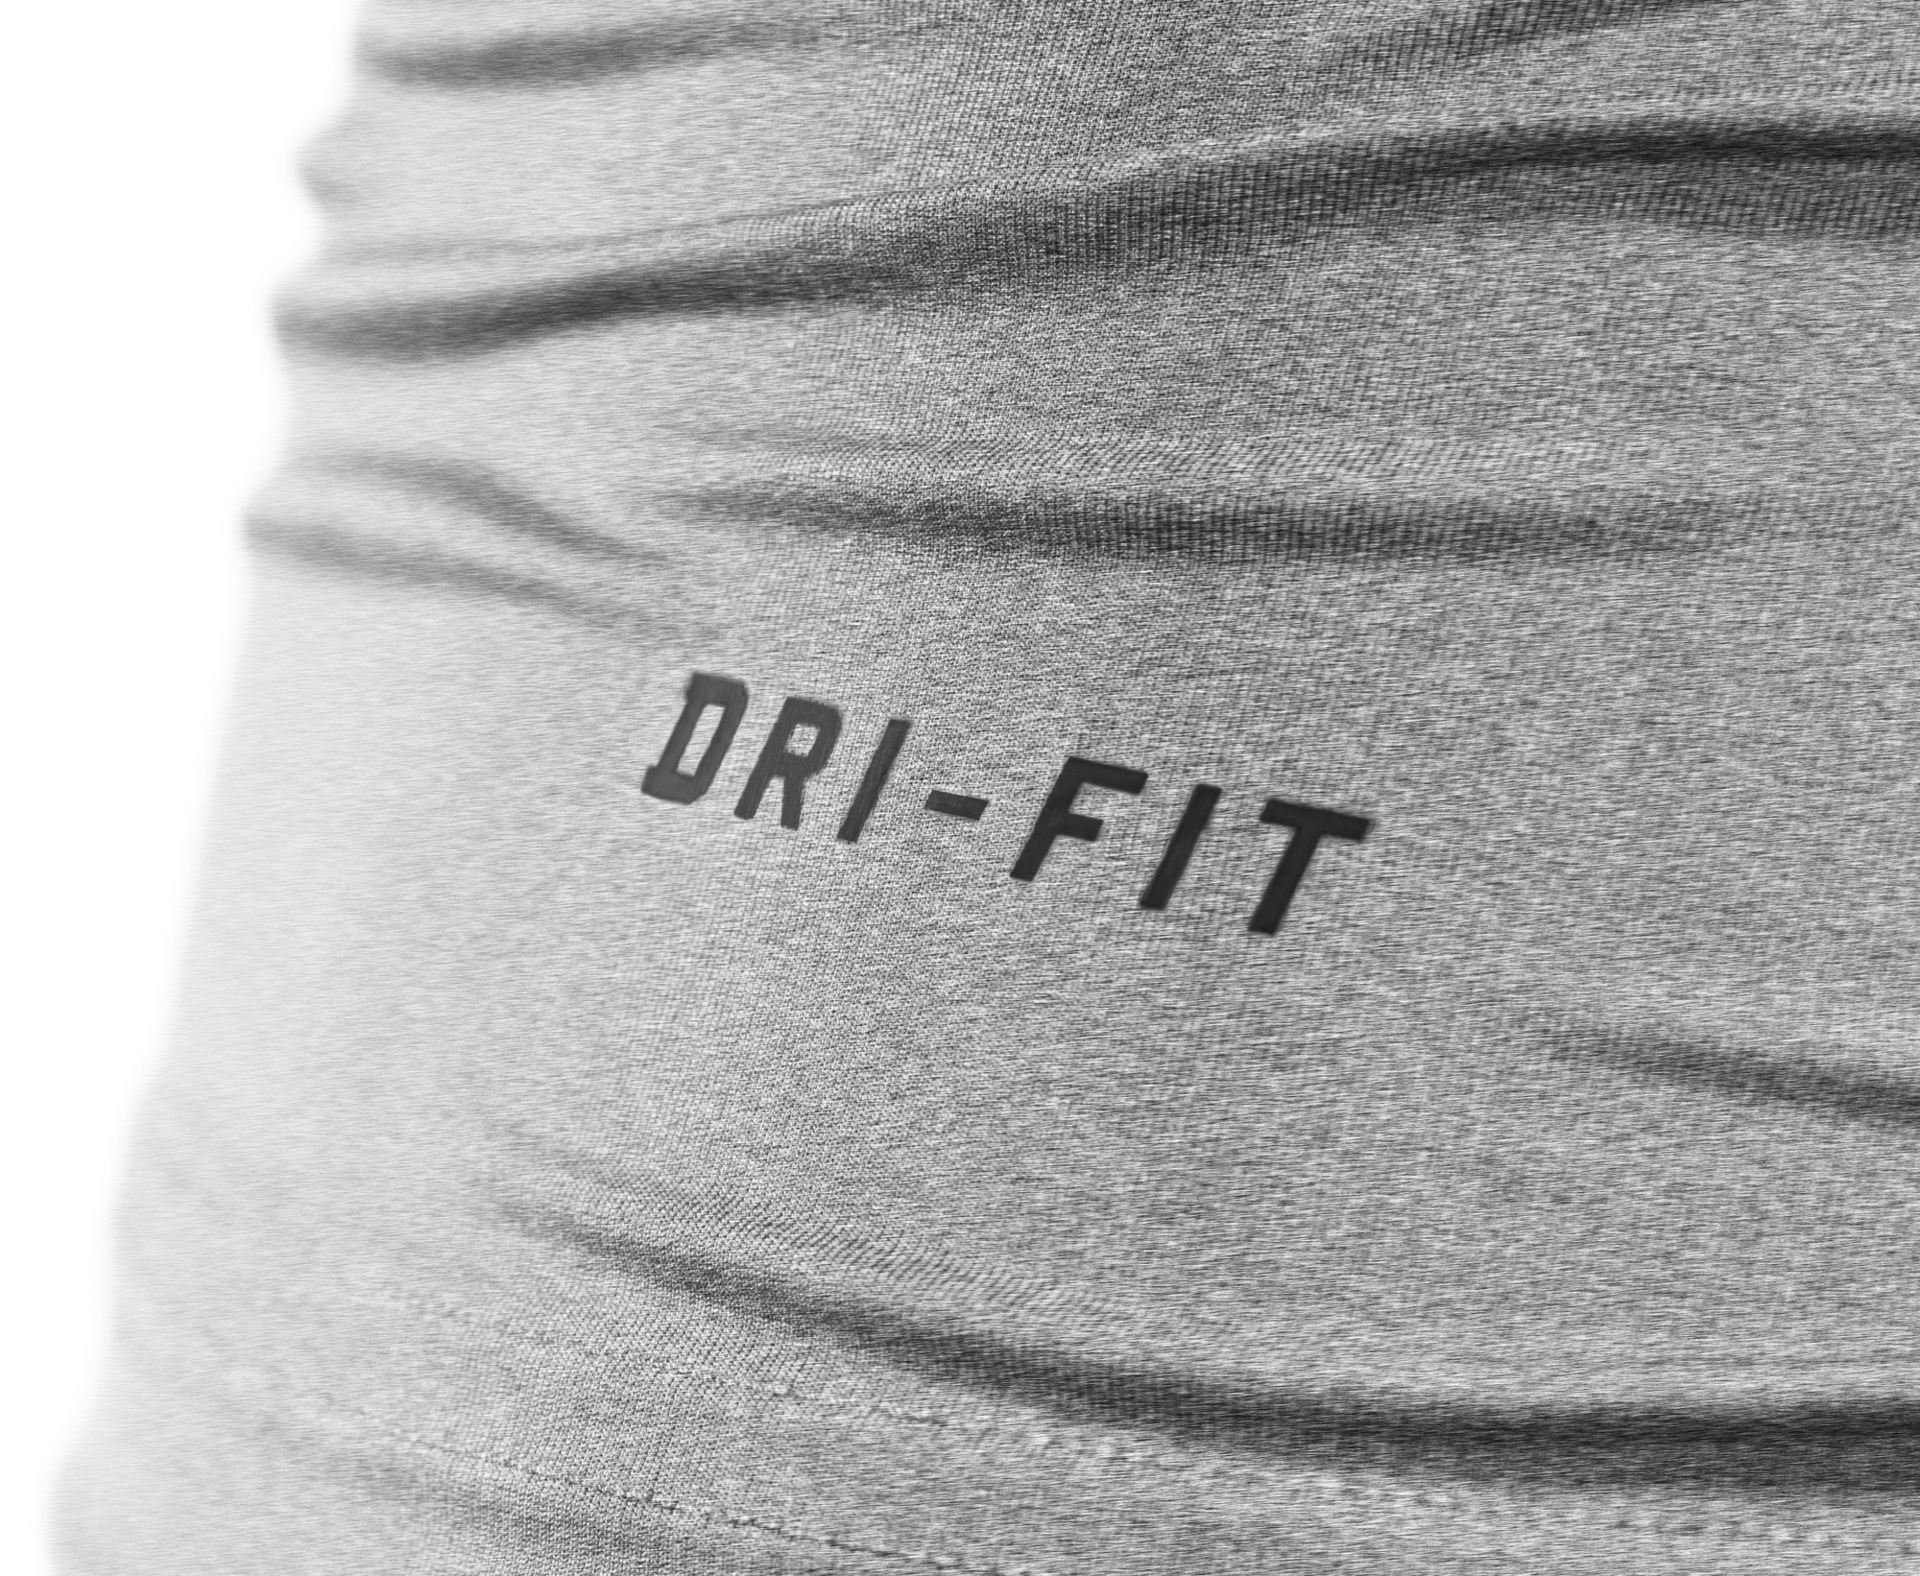 How Do I Wash Nike Dri-FIT? | Nike Help